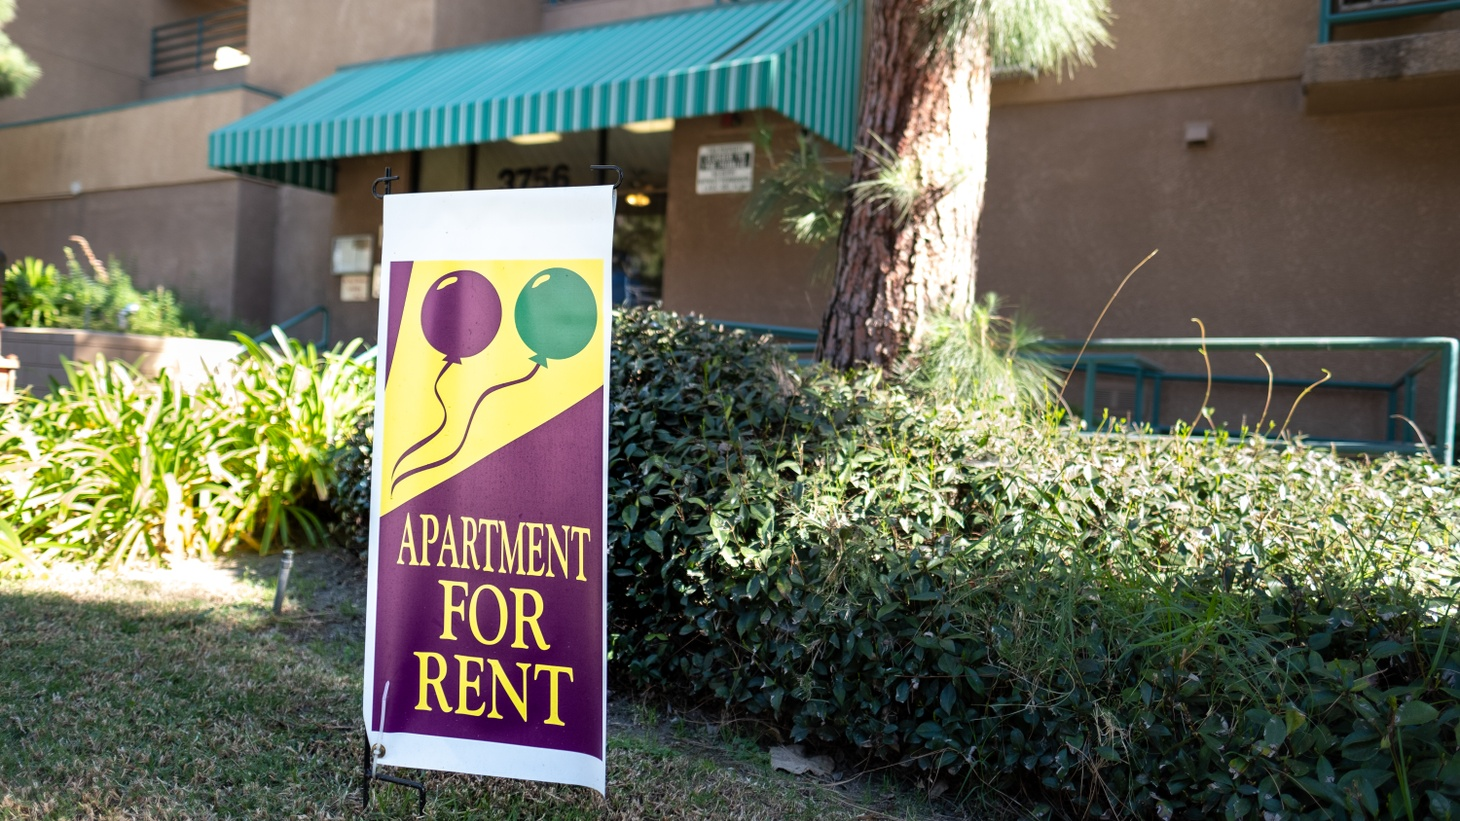 Many people have fallen behind on their rent during the pandemic, and landlords are hurting financially too. A new statewide rental relief program is rolling out on March 15, 2021. It's aimed at low-income renters who are at risk of losing their homes.